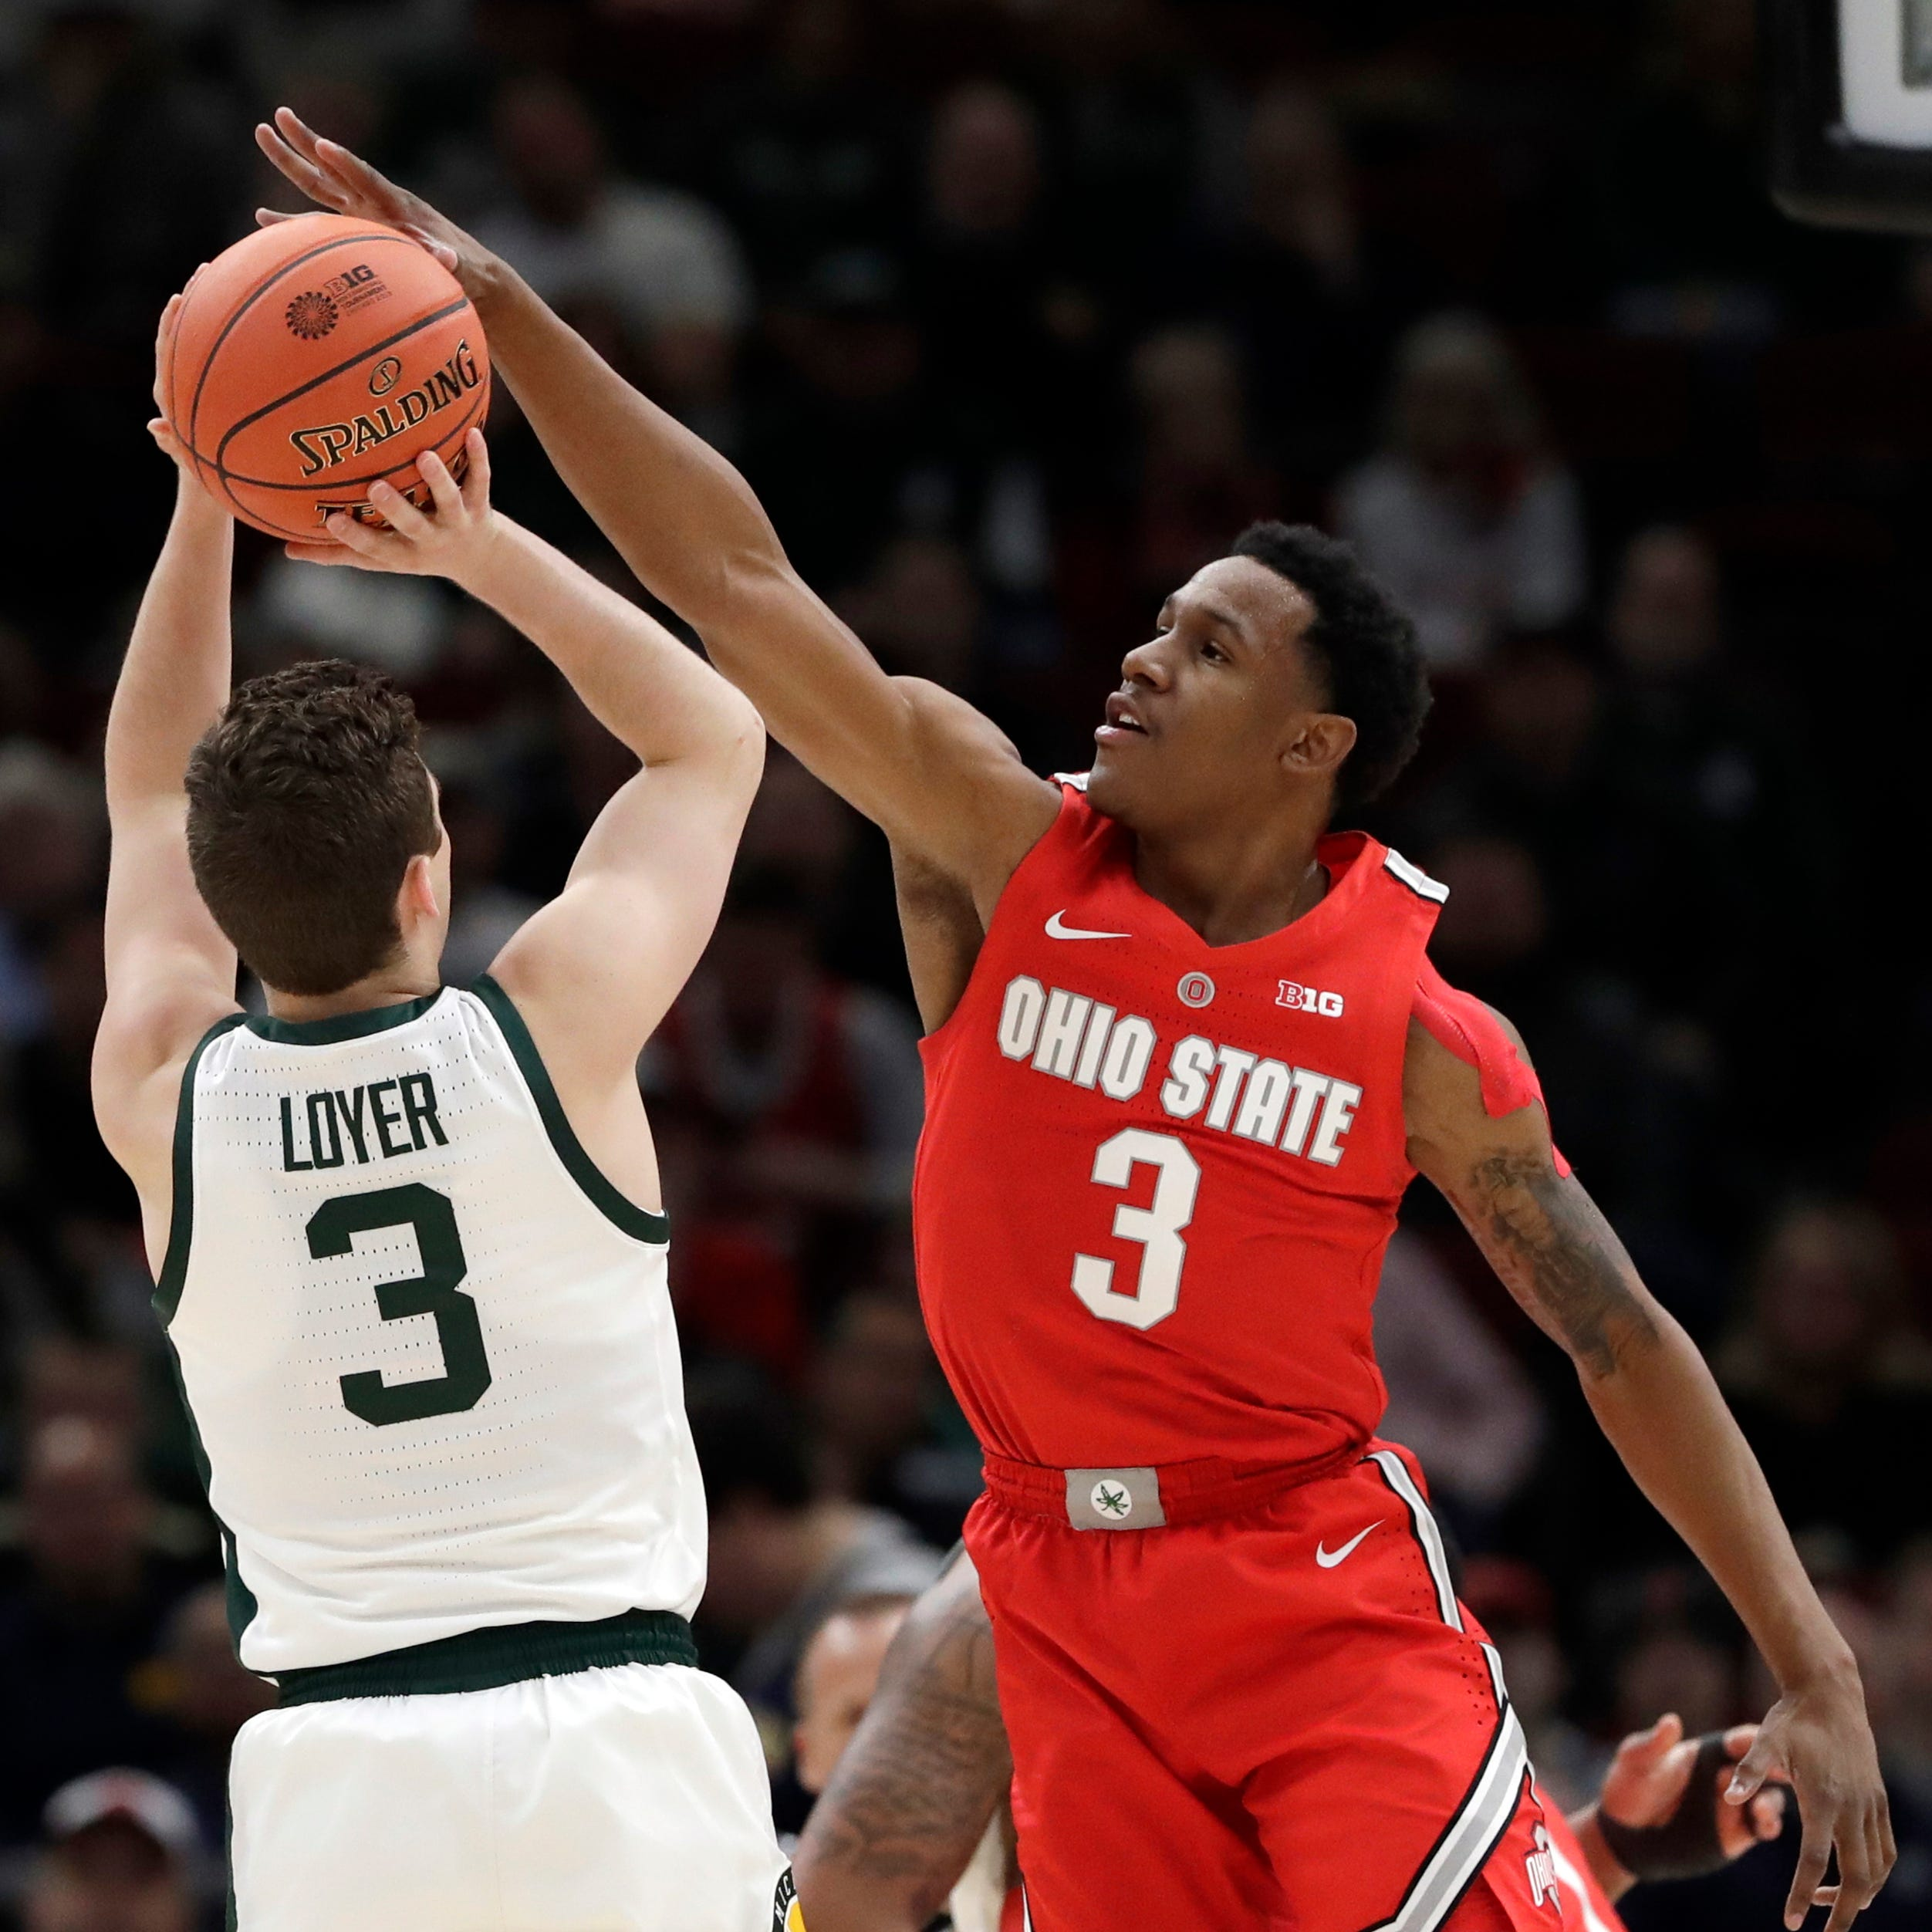 Couch: 3 quick takes on Michigan State's Big Ten tournament win over Ohio State